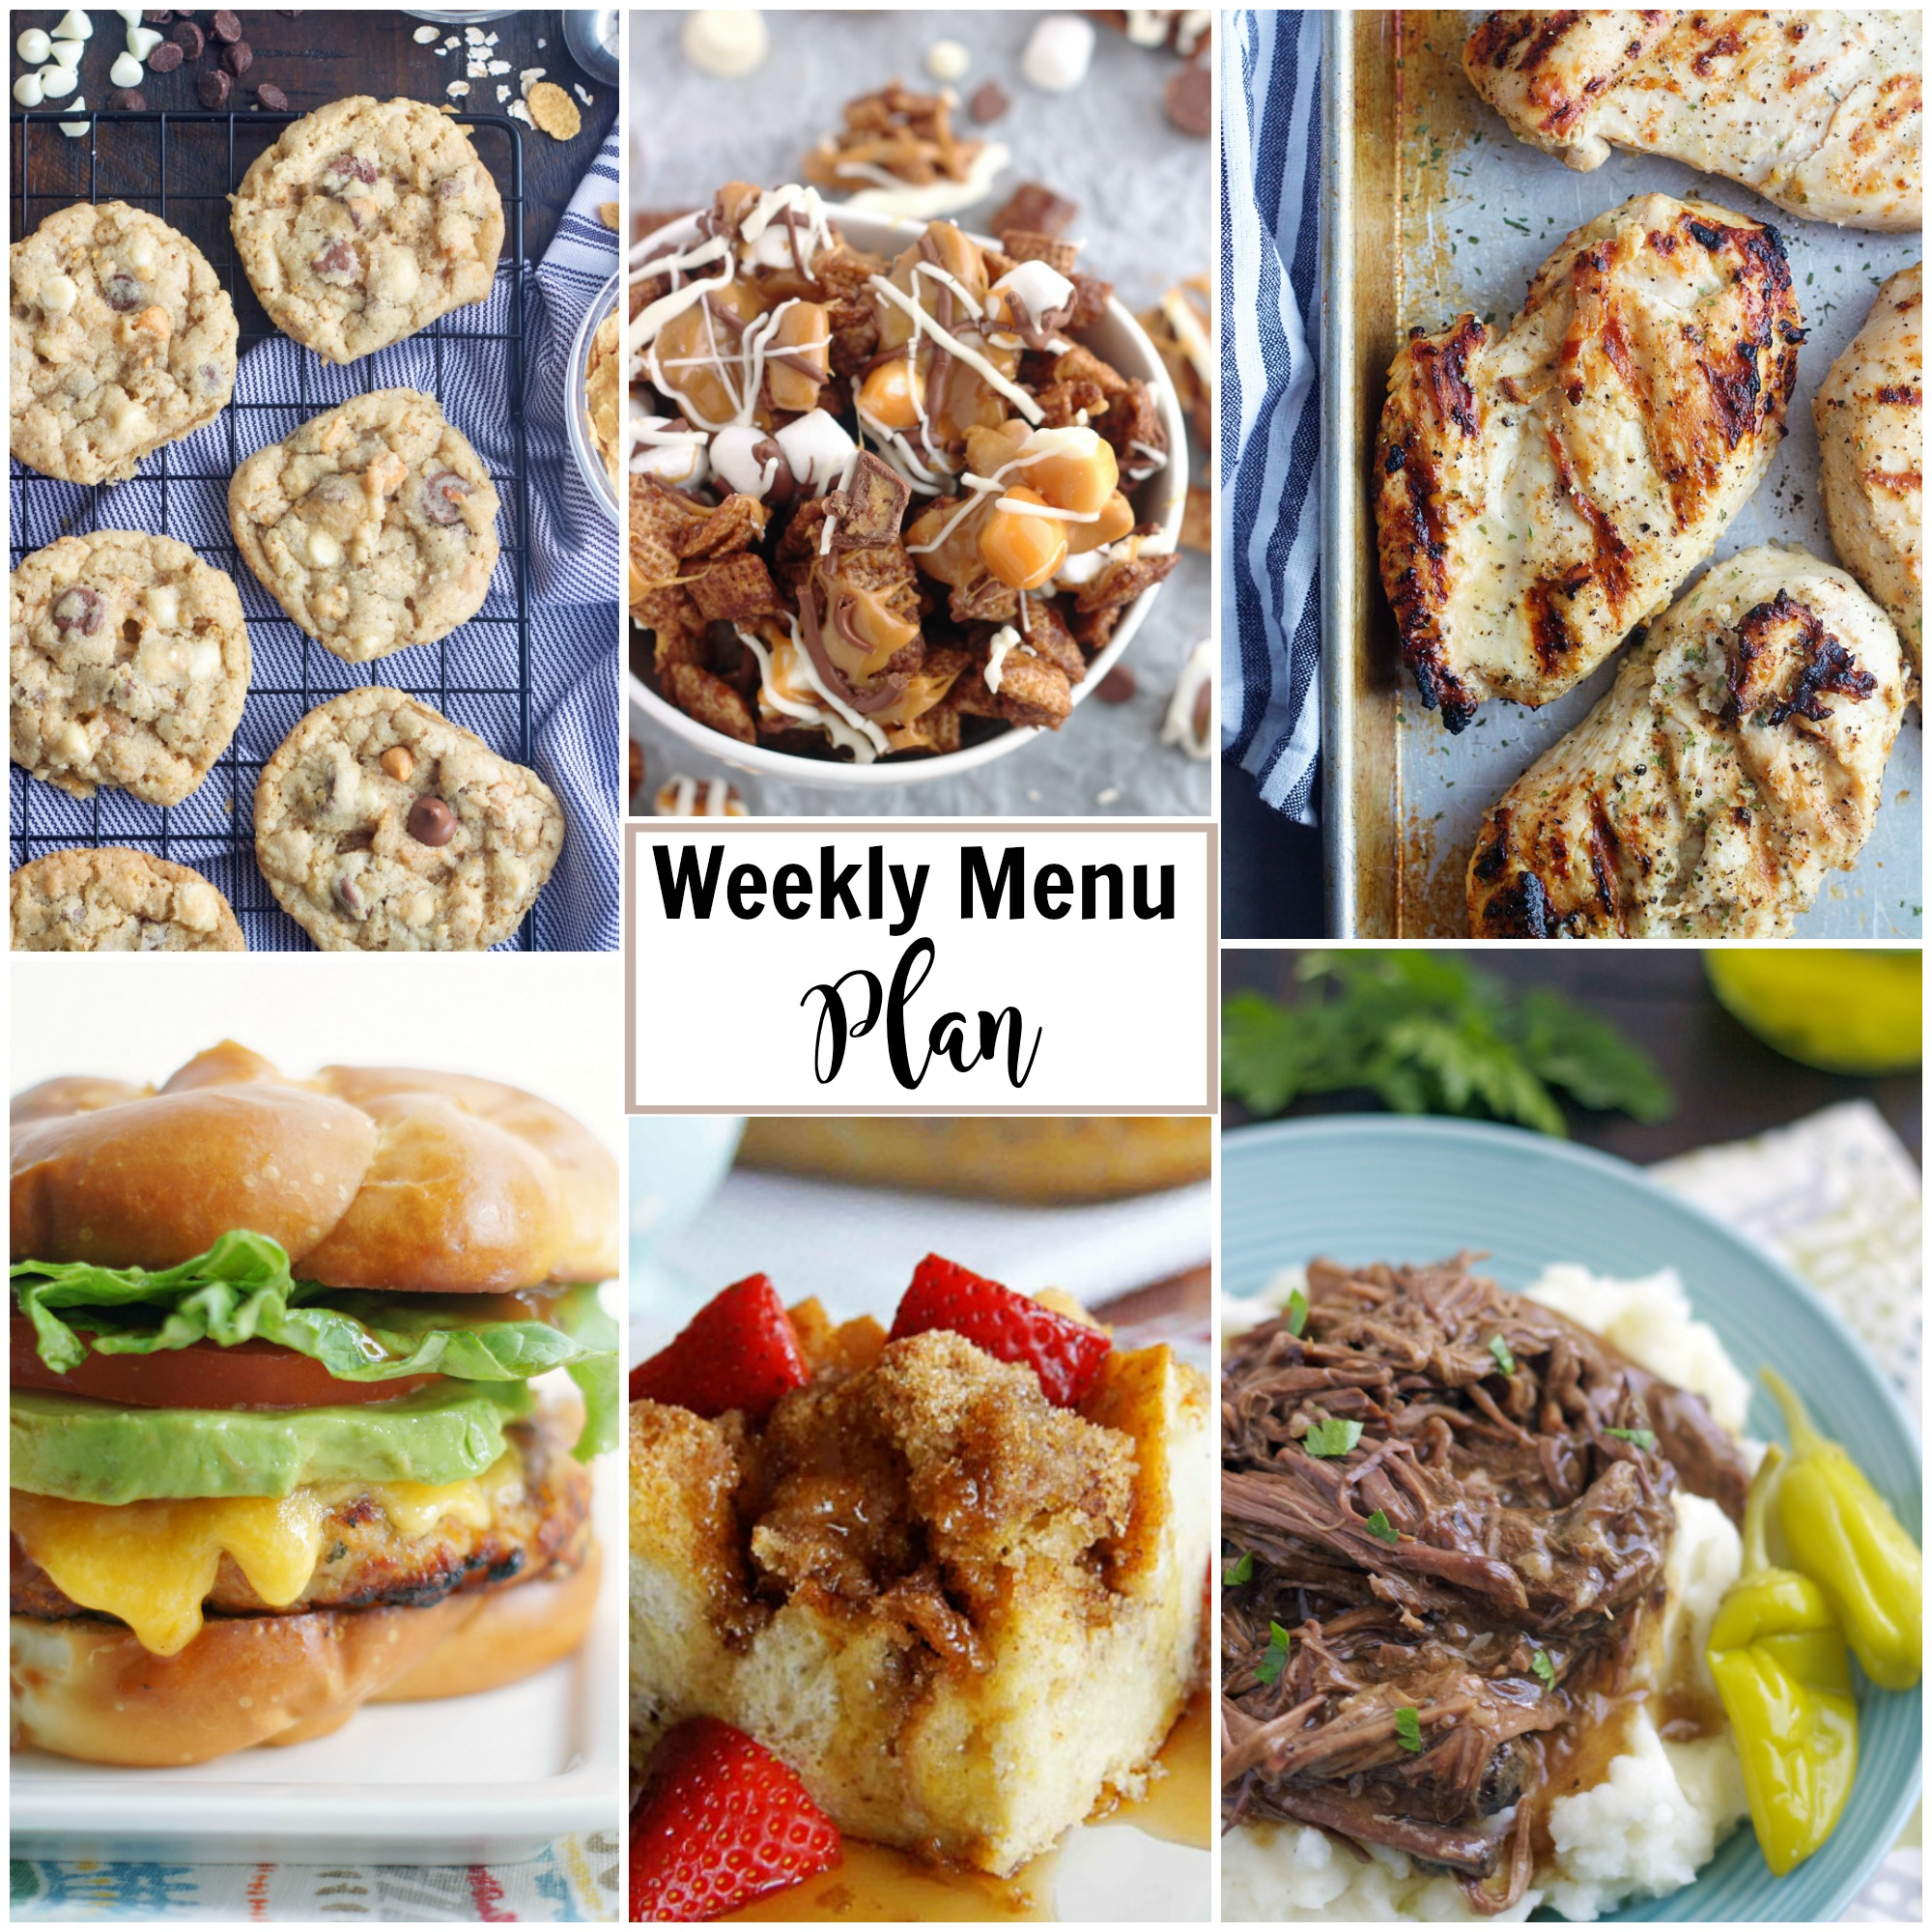 A collage of a weekly menu plan